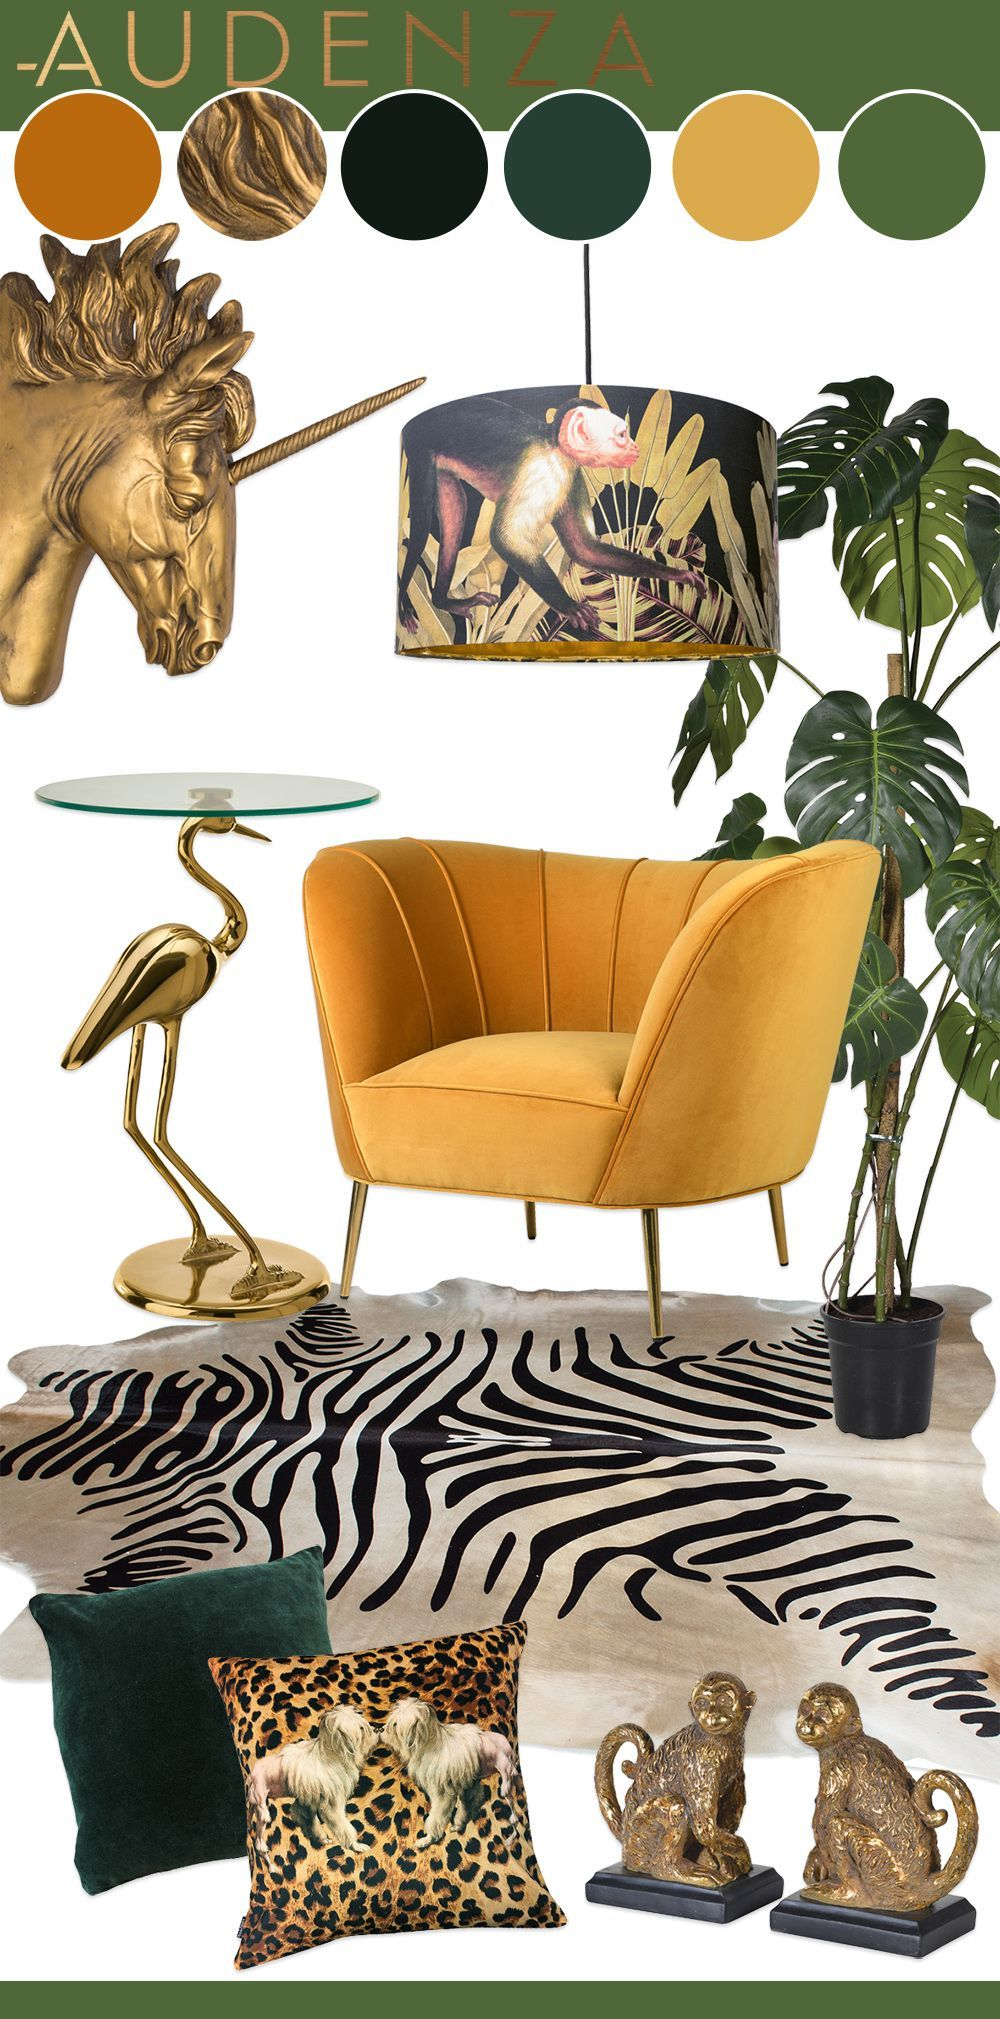 3 New Season Mood Board Ideas for a Super Stylish Home | Audenza